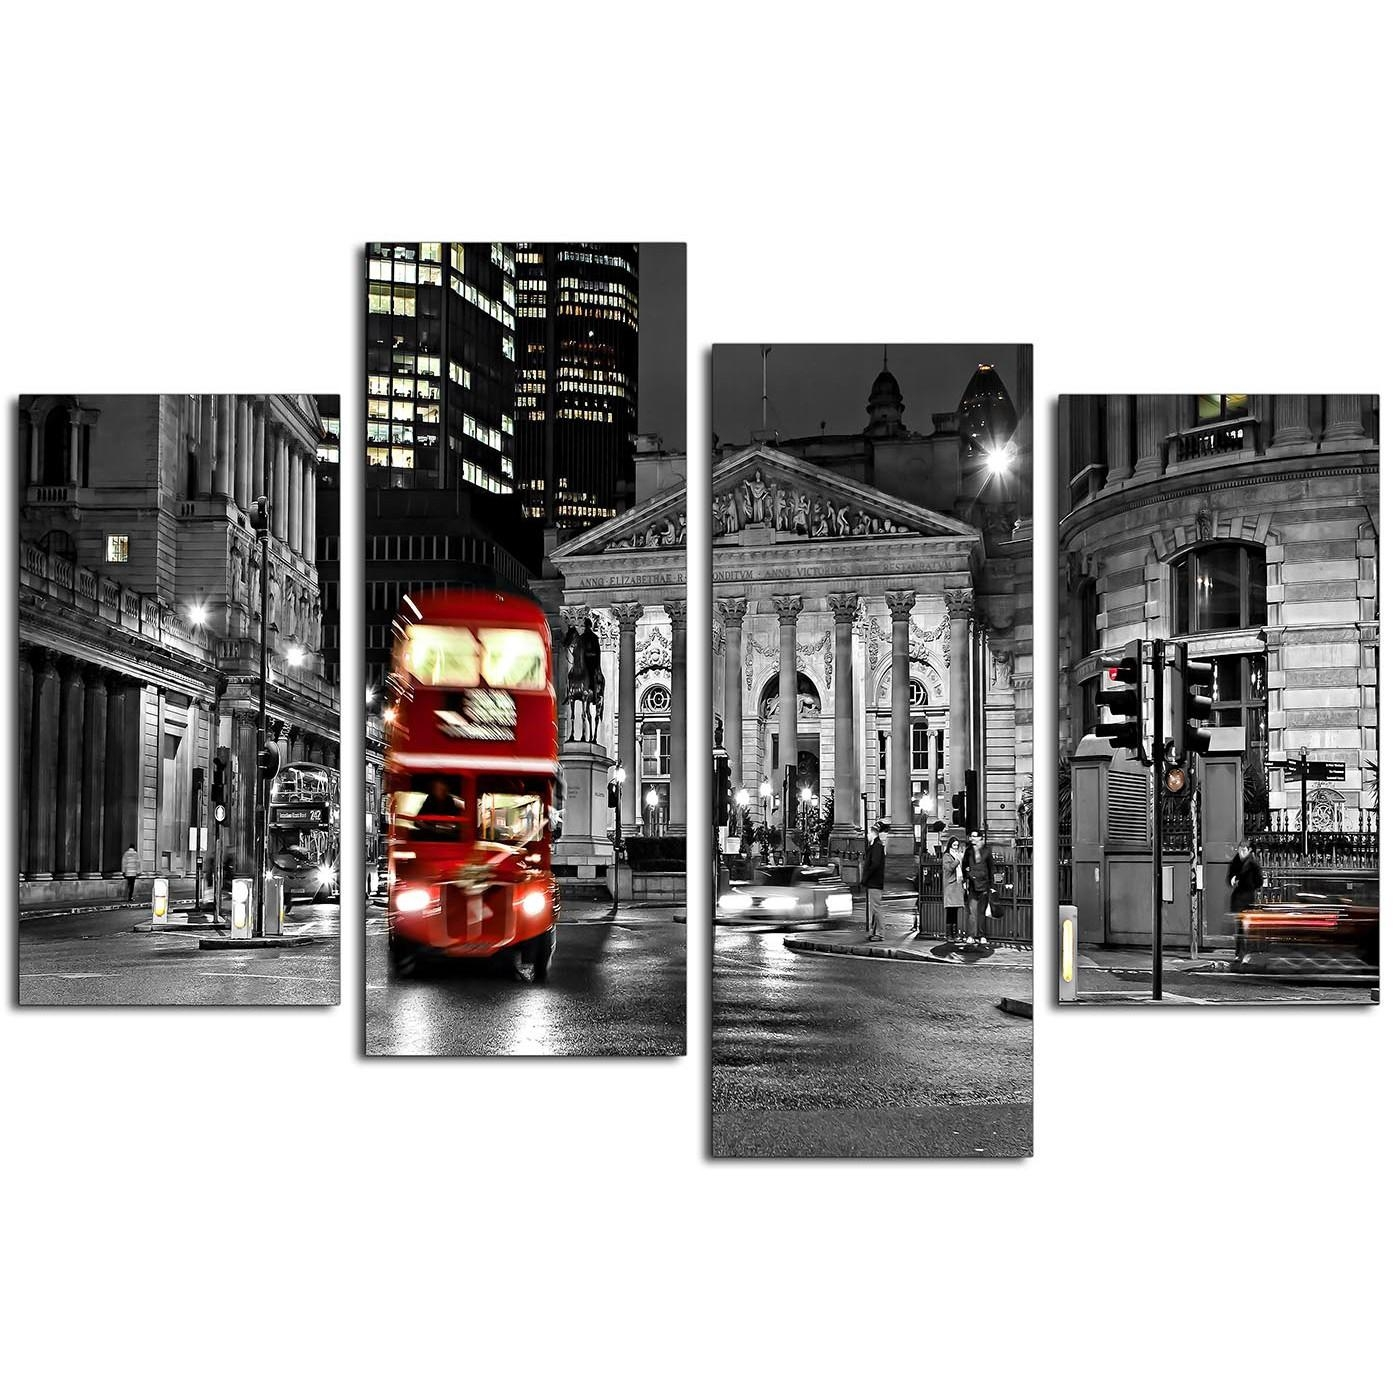 Canvas Prints Of A Red London Night Bus In Black And White Within Black And White Wall Art With Red (View 10 of 20)